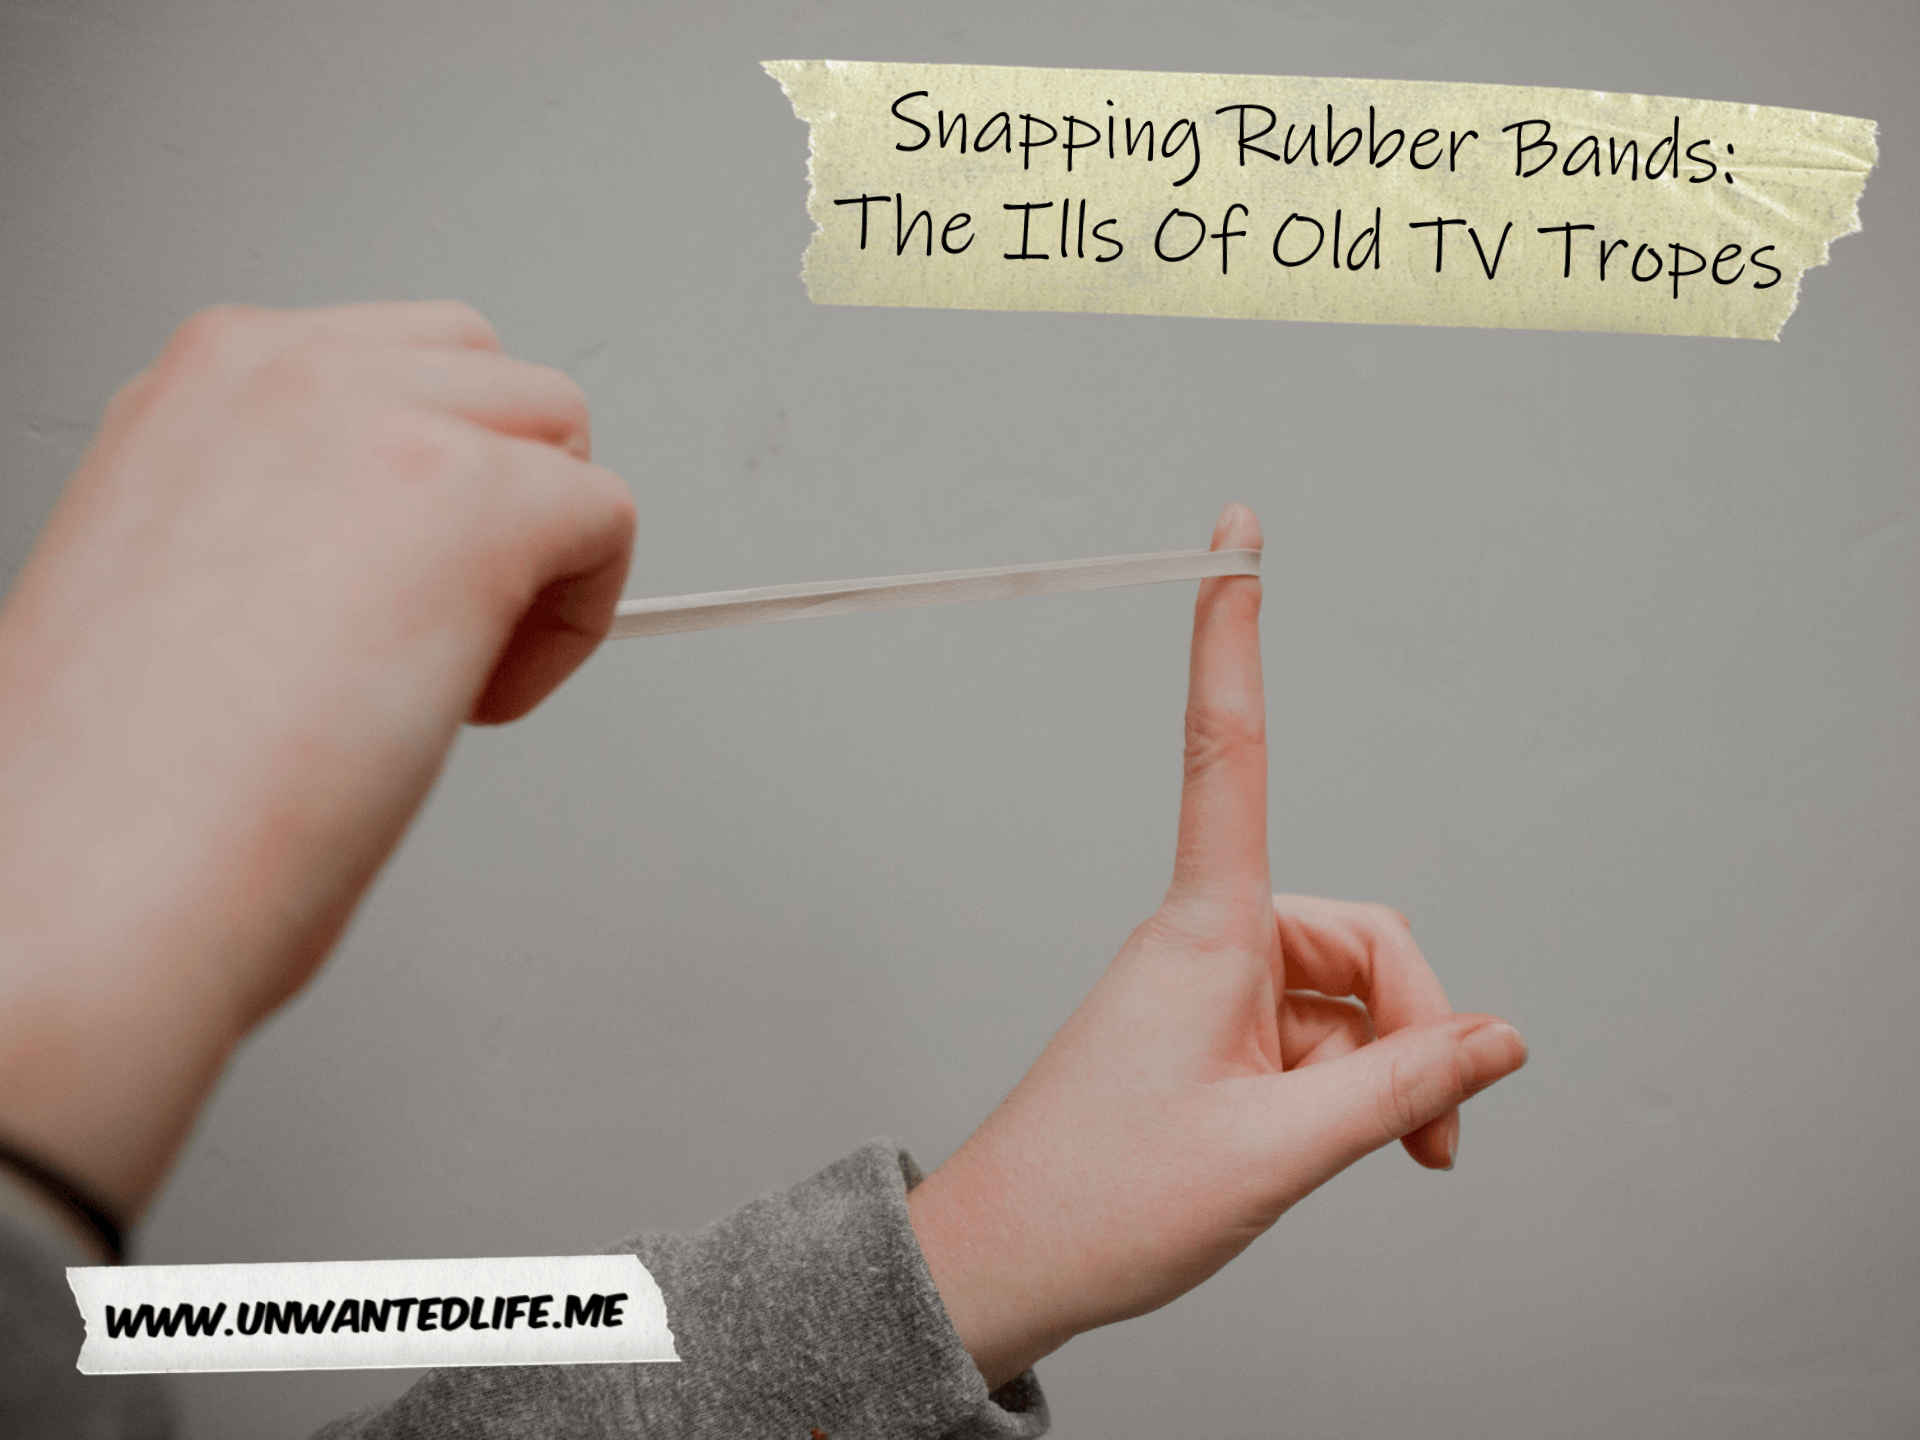 A photo of a young persons hand pulling back a rubber band ready to shoot it off with the article title - Snapping Rubber Bands: The Ills Of Old TV Tropes - in the top right corner of the photo